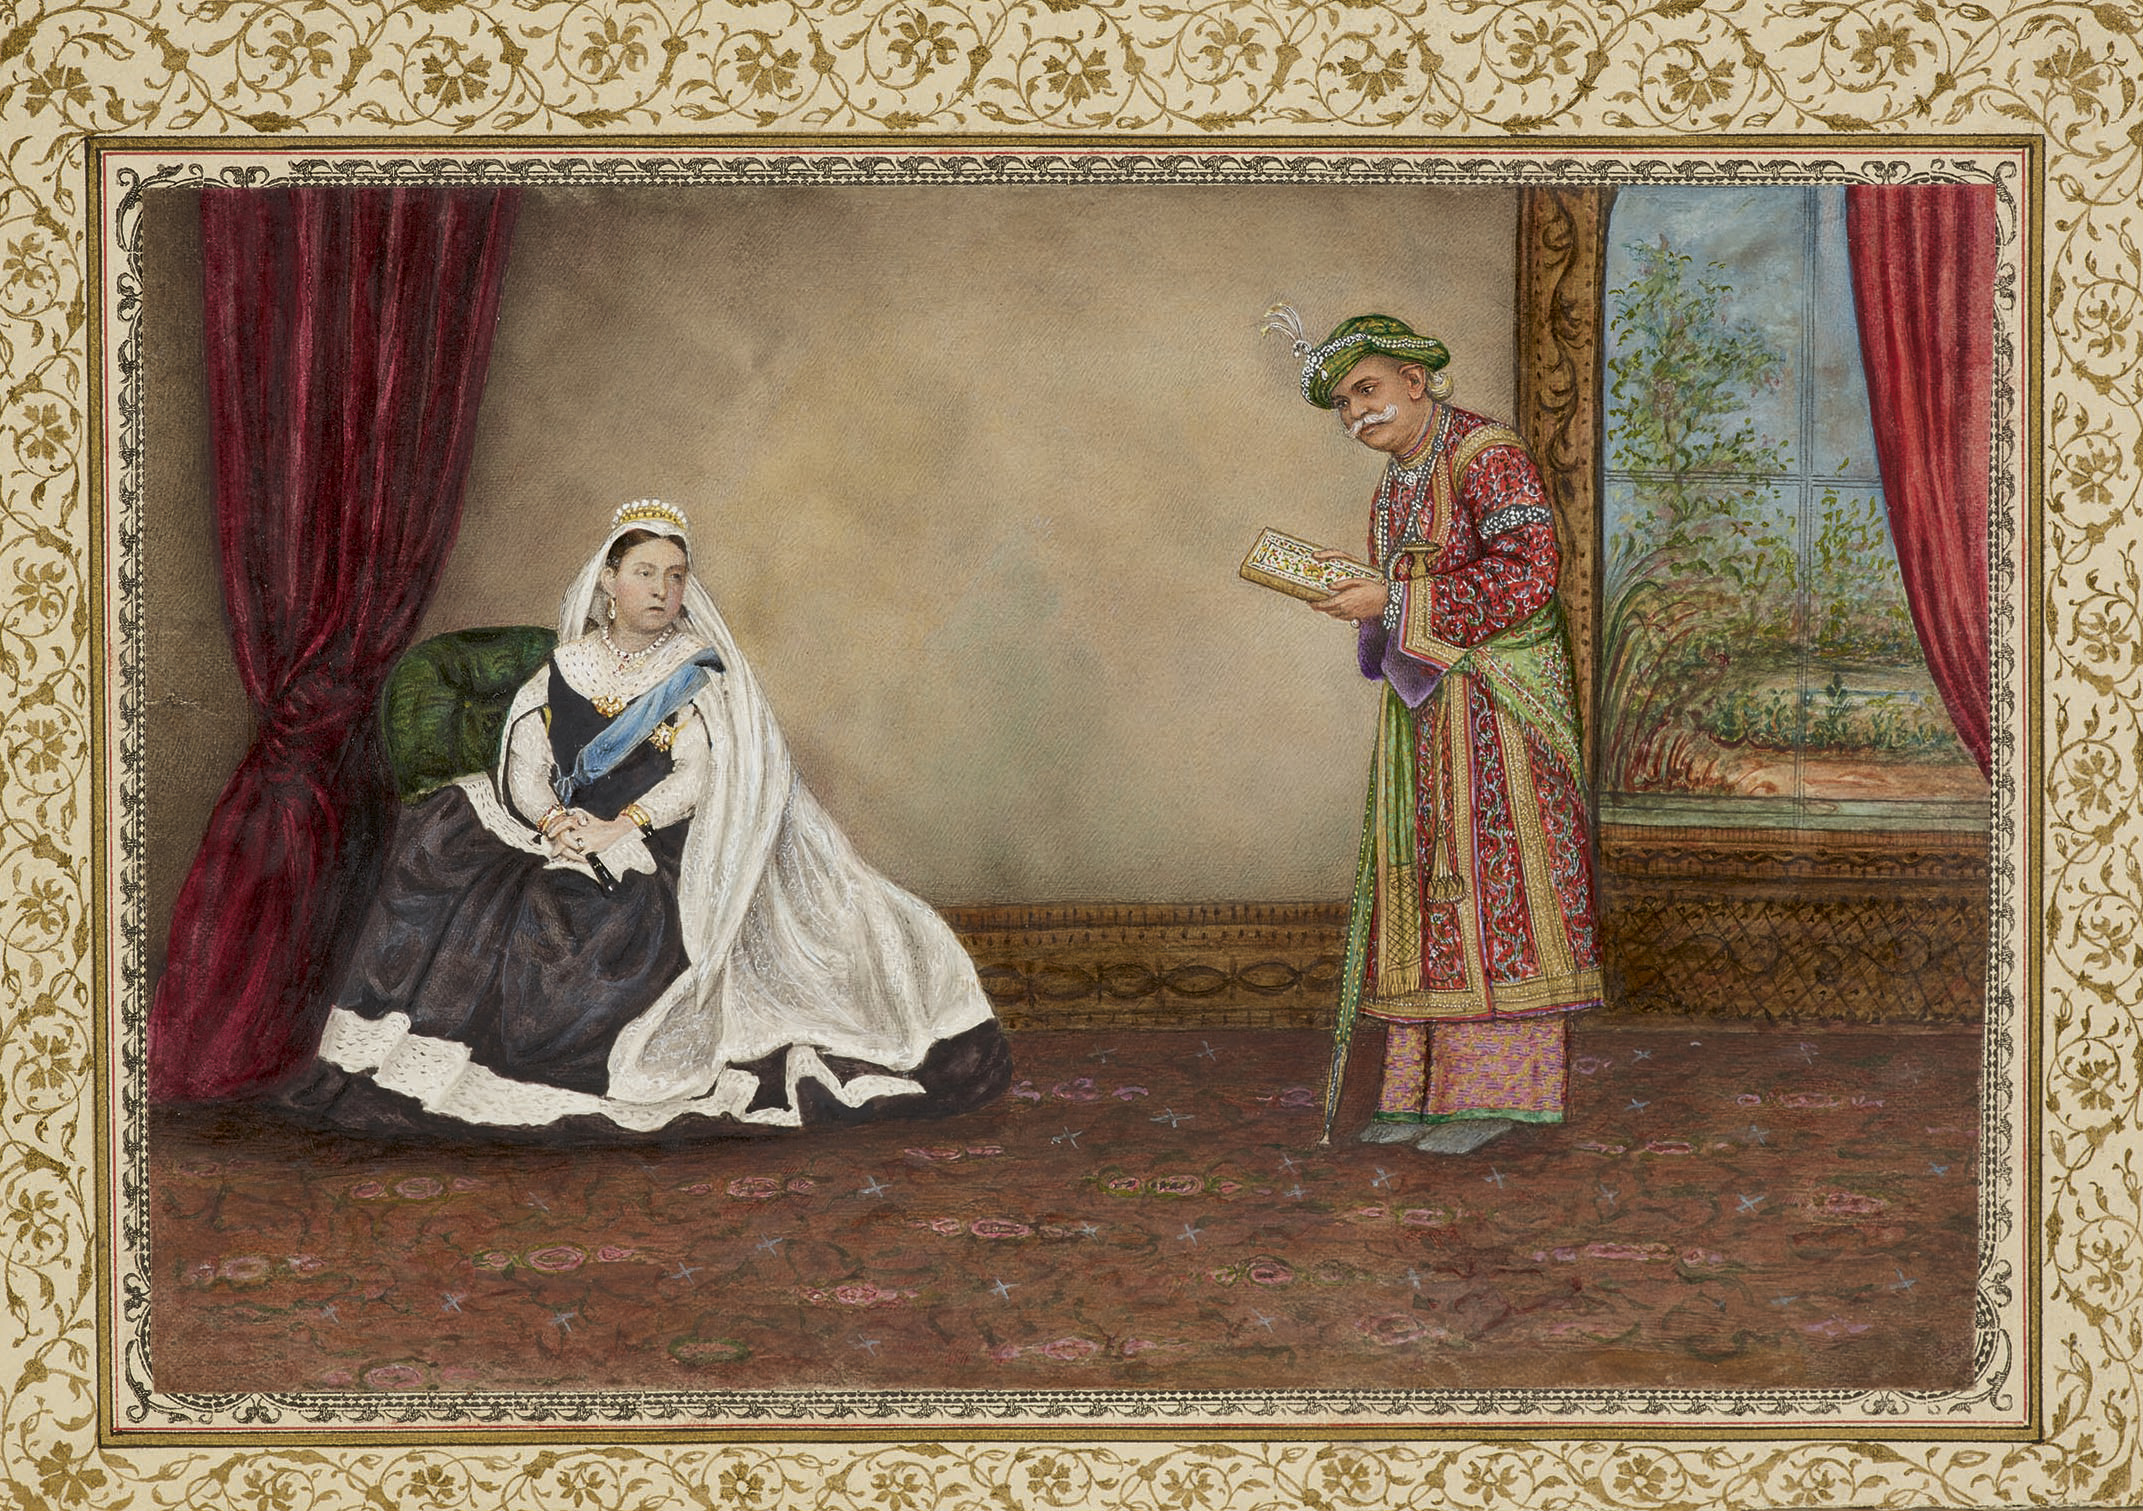 The Eastern Encounters exhibition features a painting by artist Varanasi, depicting the Queen's travels in Scotland and Ireland